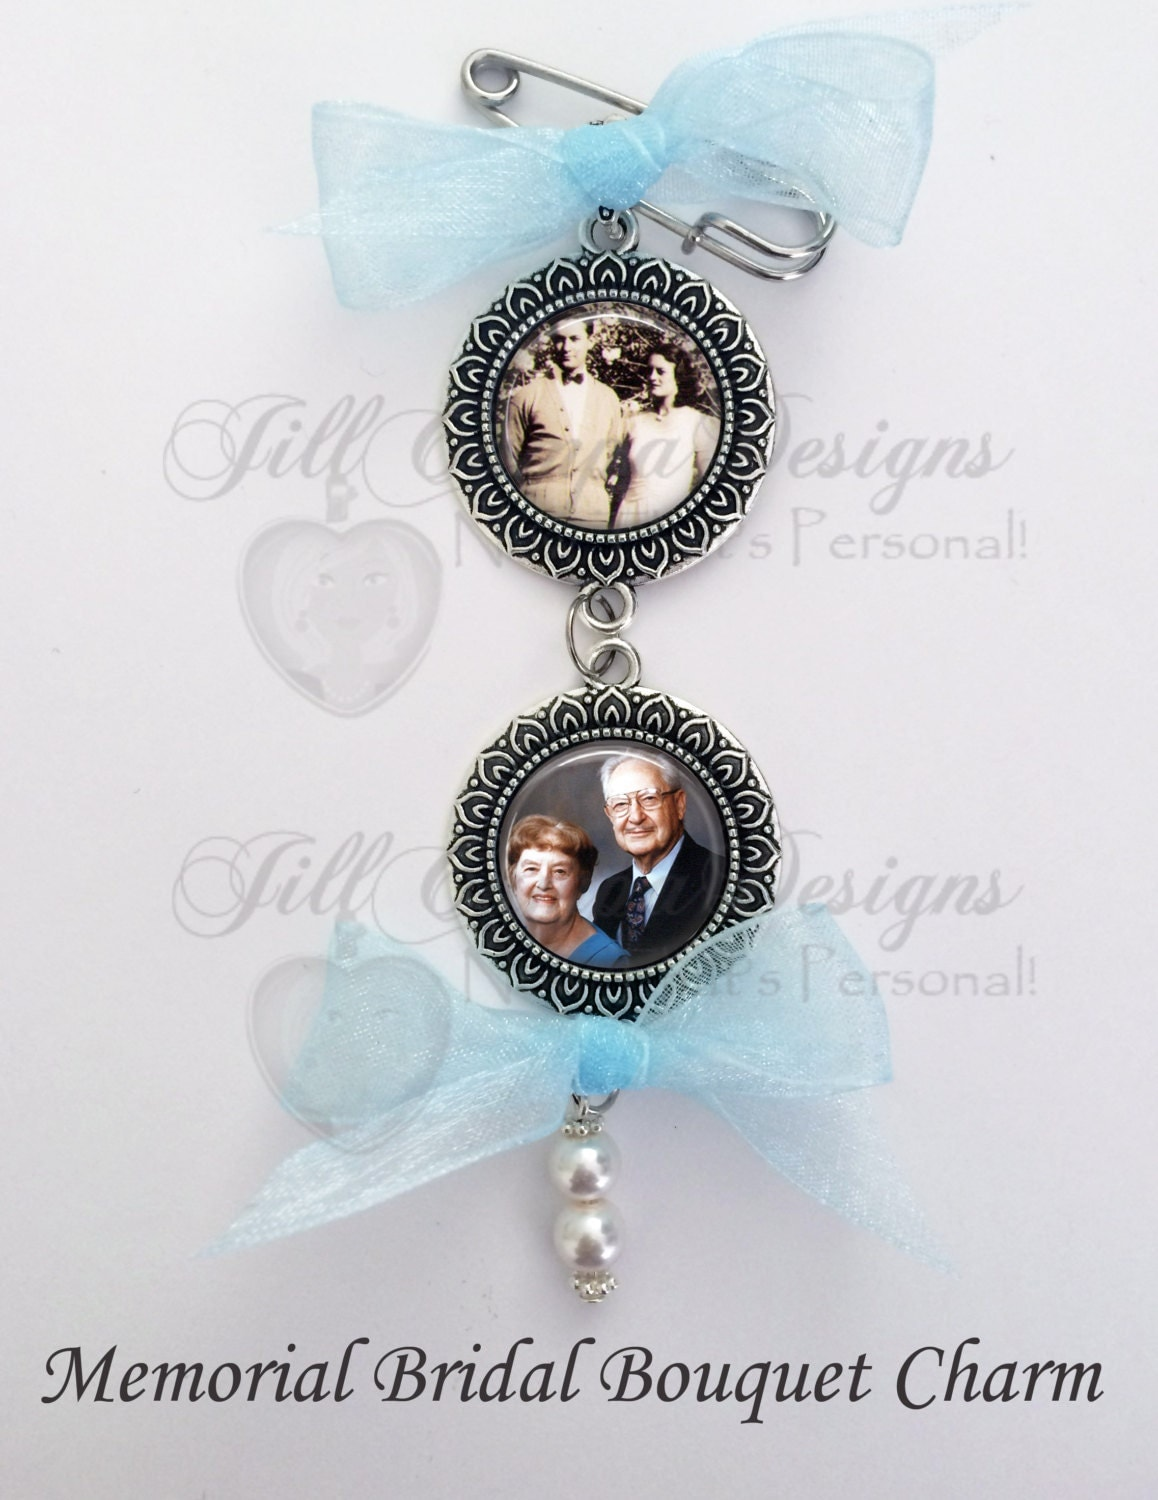 memorial bridal bouquet charms wedding bouquet charms bridal